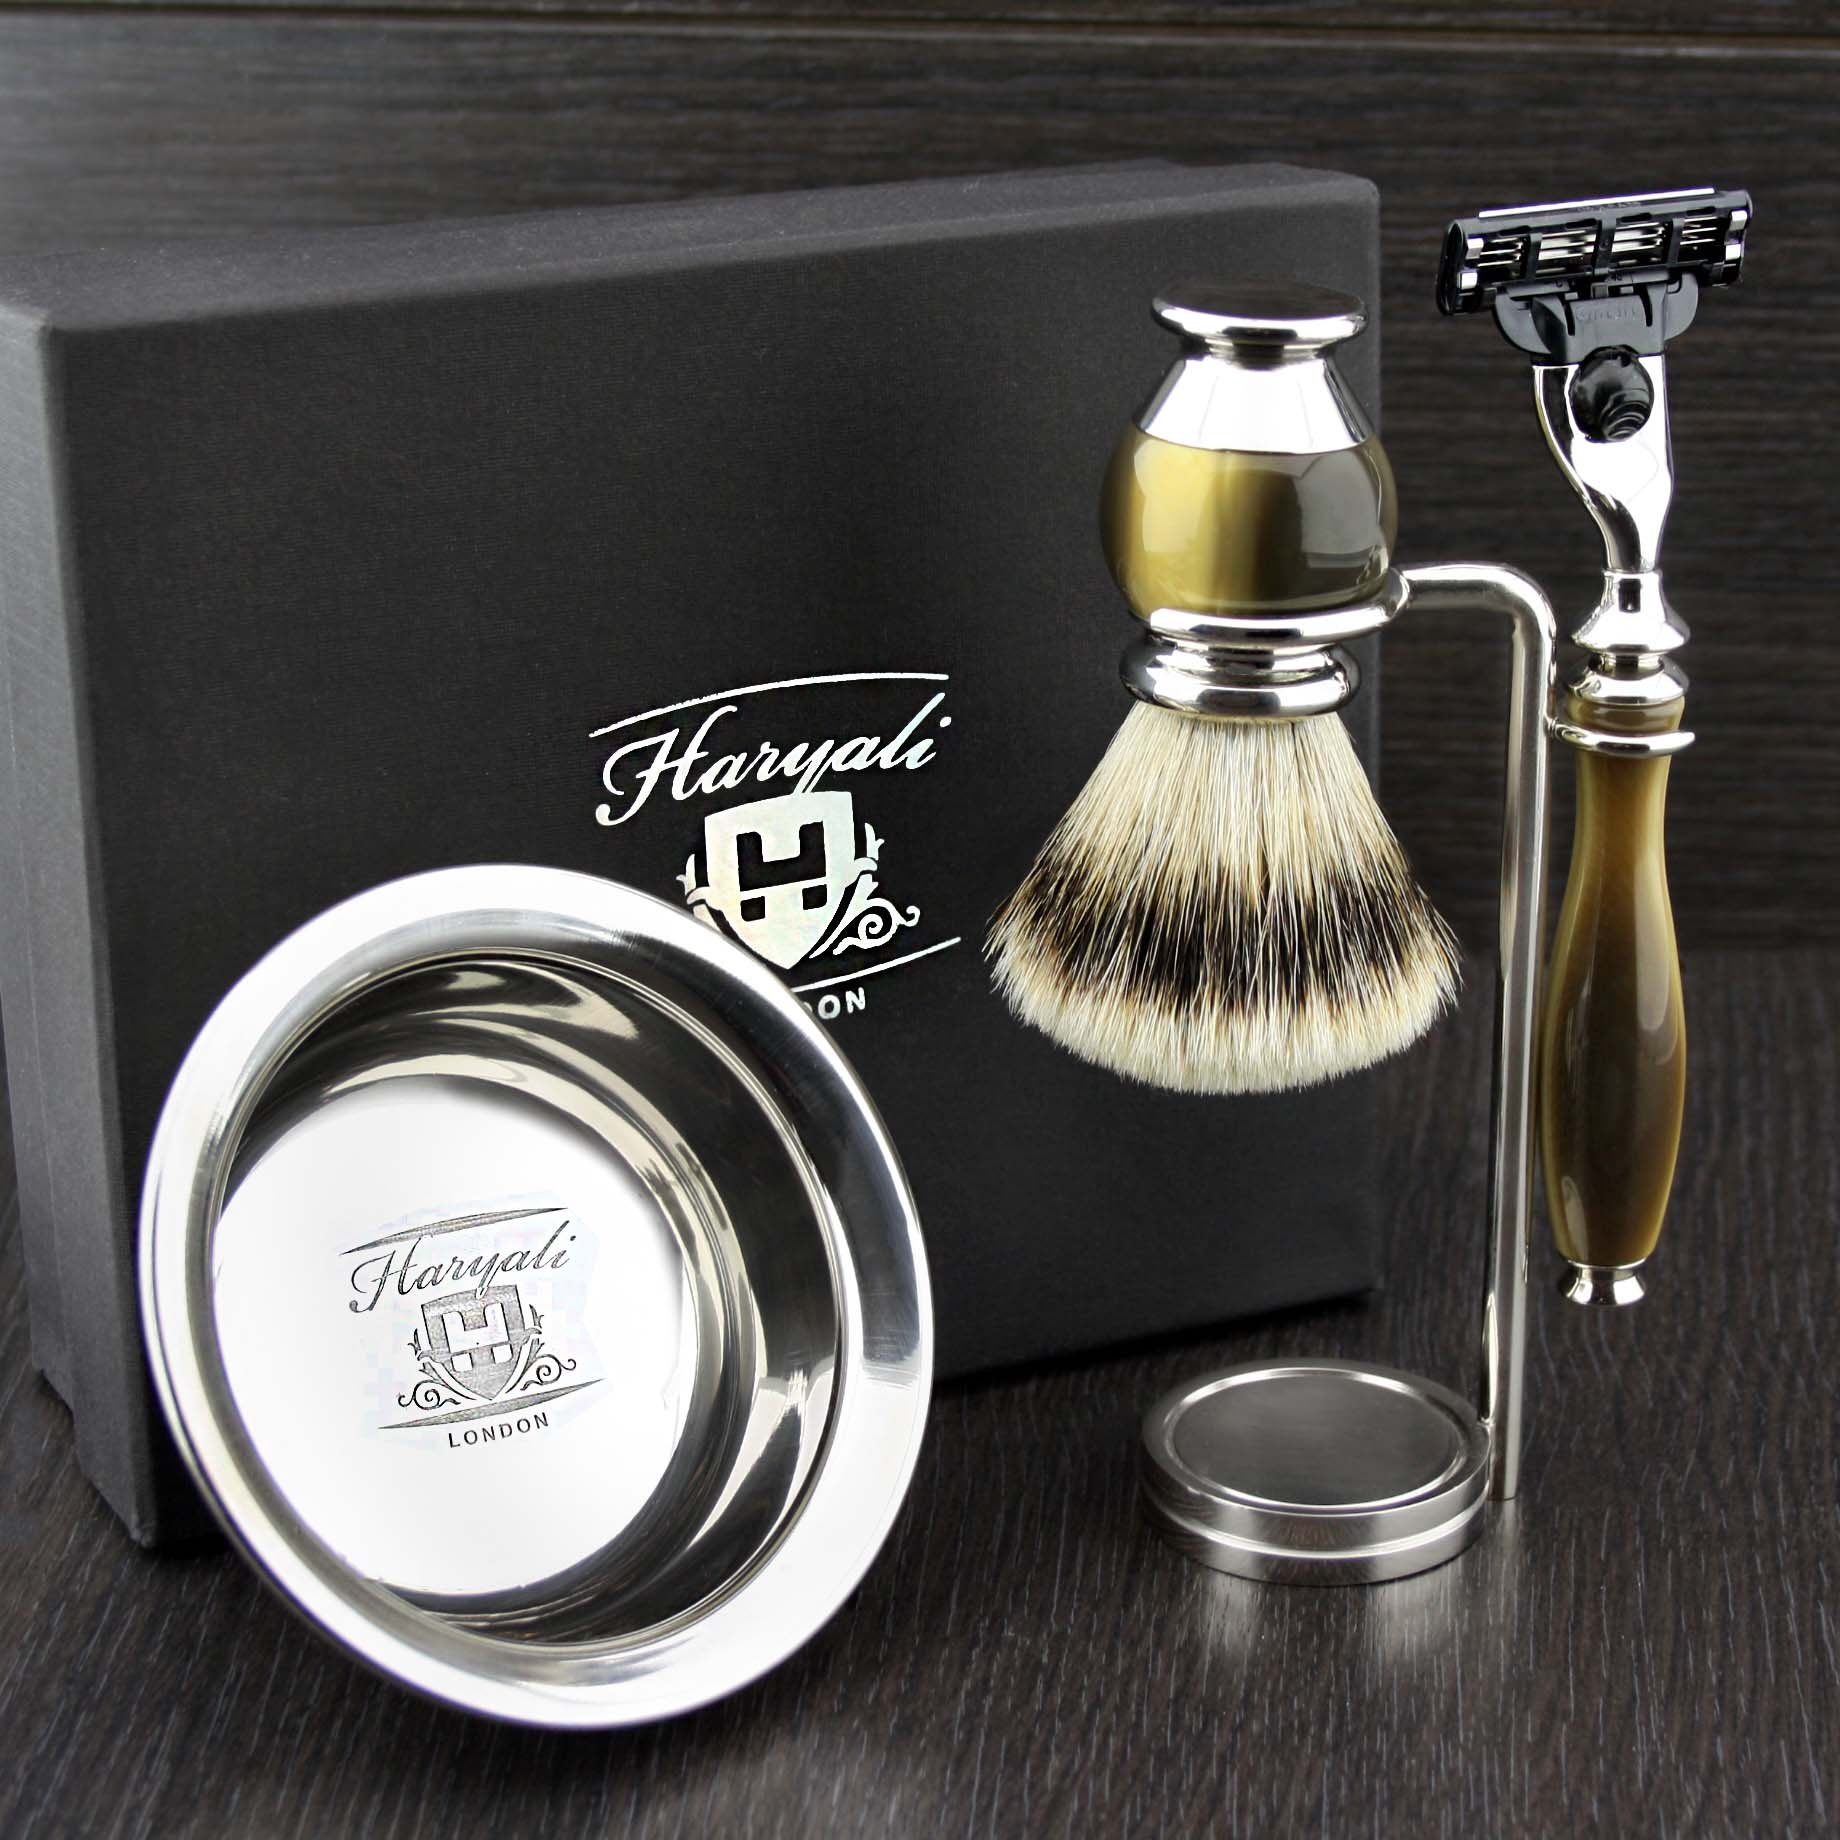 Simulated Horn and Nickel 4 Pieces Men's Shaving Set With Gillette Mach 3 (Replaceable Head) Razor. Newly Designed By HARYALI LONDON